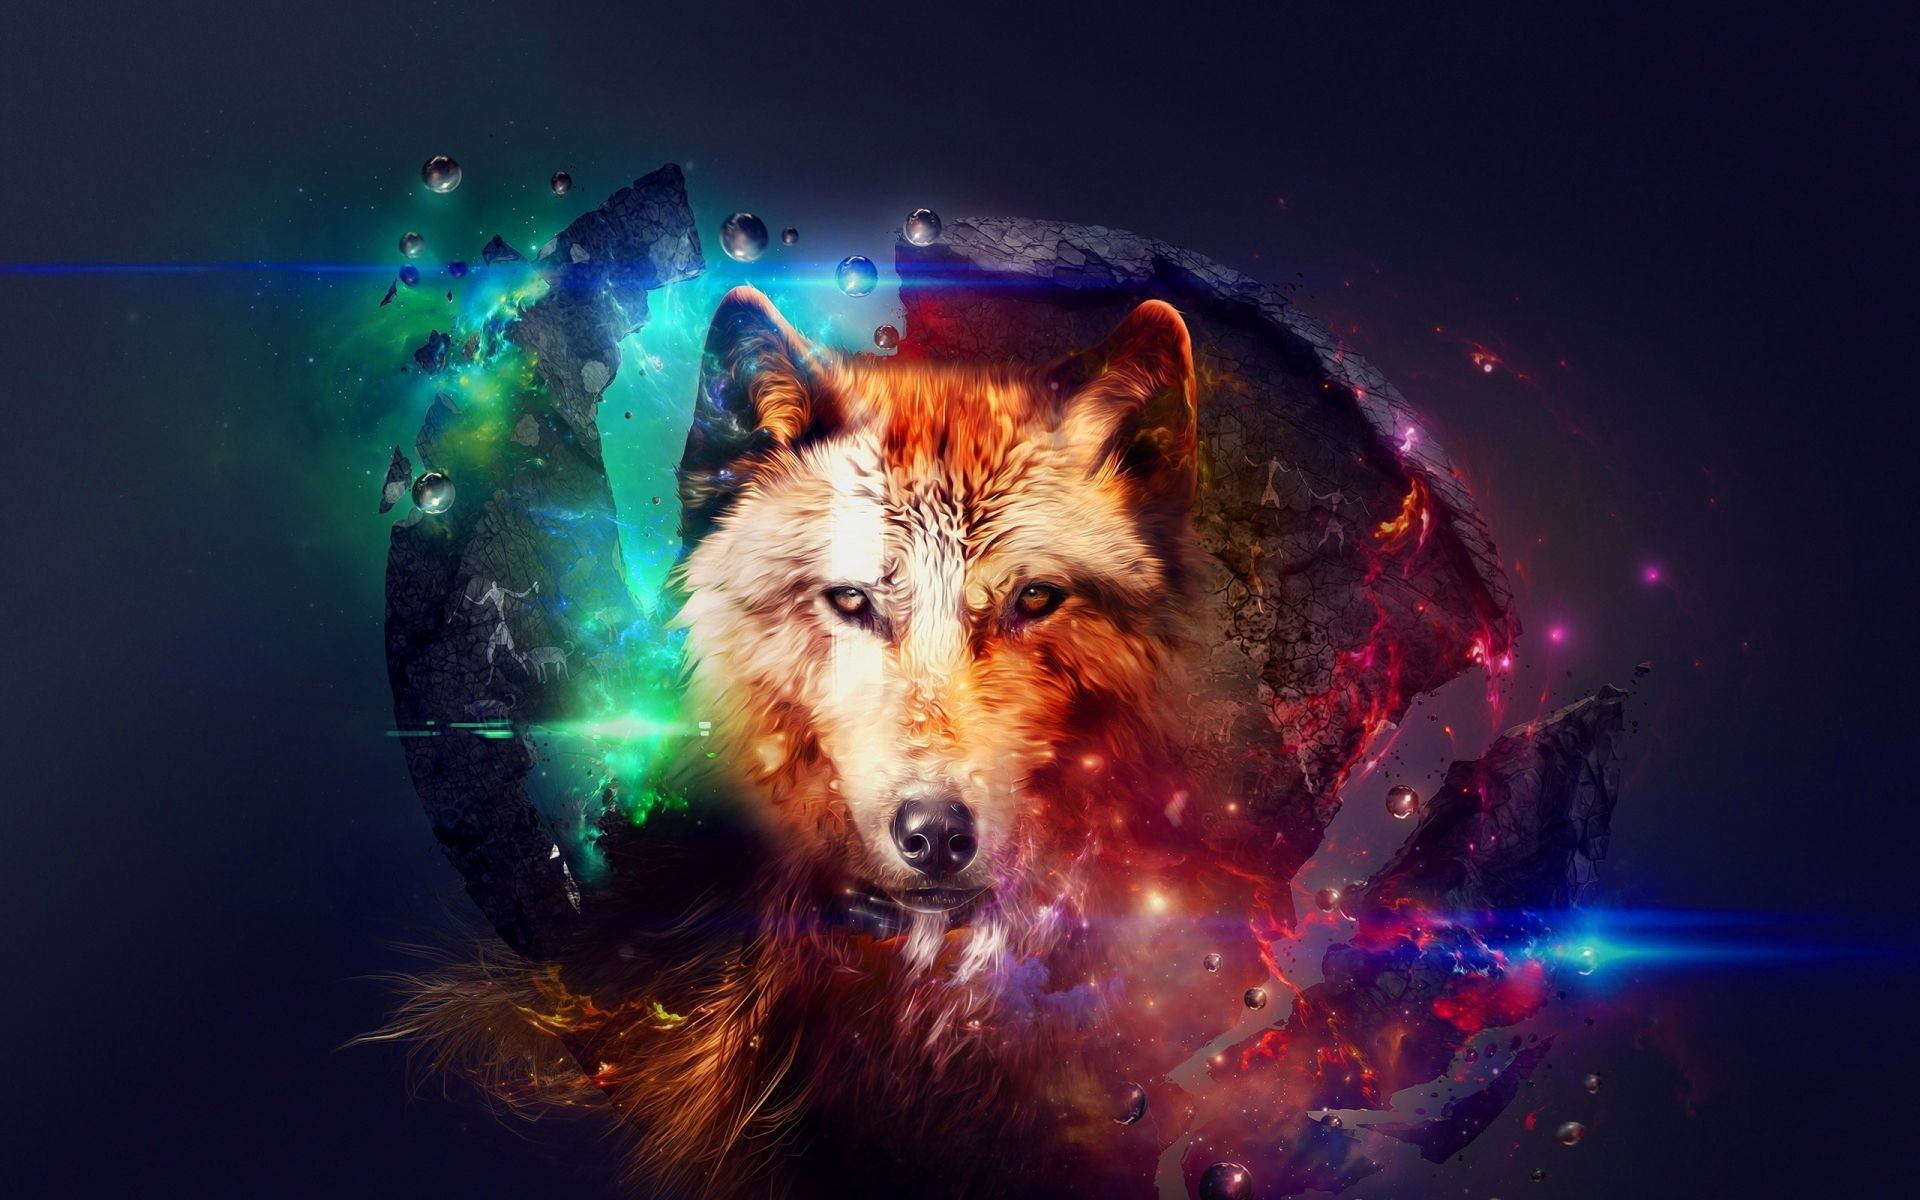 1920x1200 fantasy-wolf-head-in-the-space--digital-